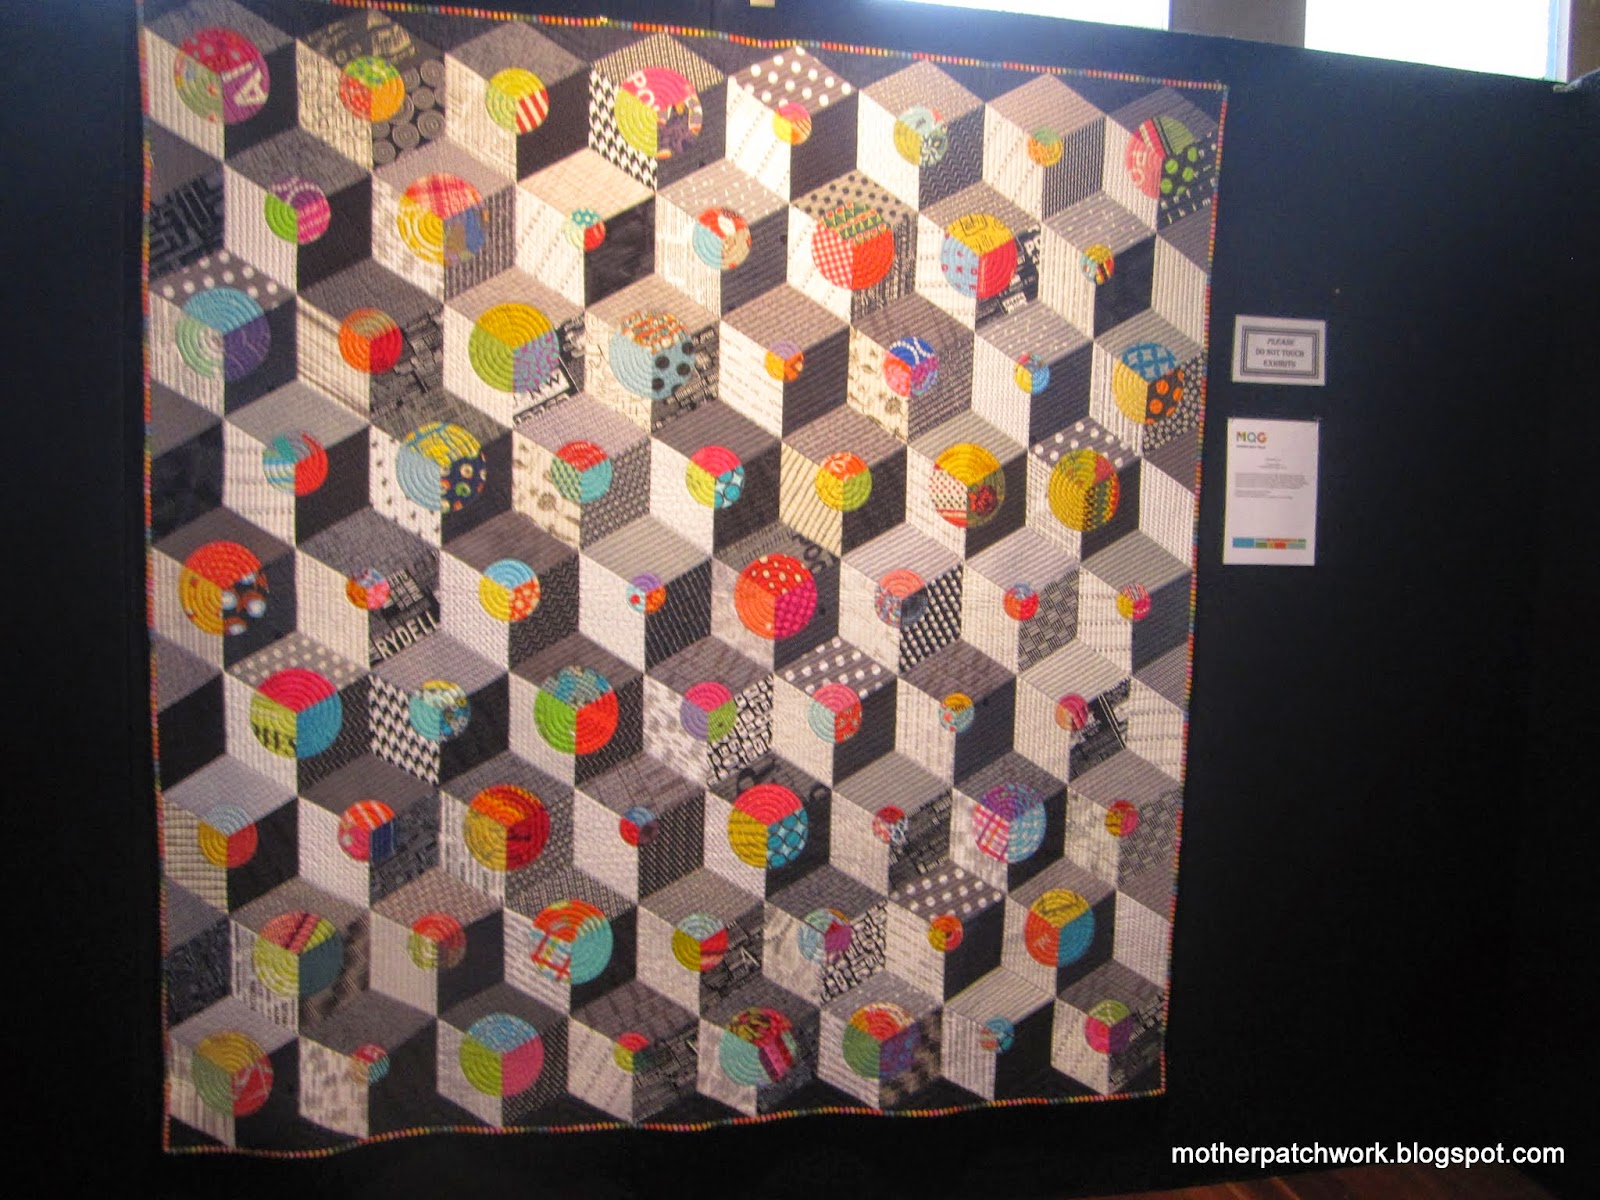 Mother Patchwork: Quilt Convention : quilting convention - Adamdwight.com